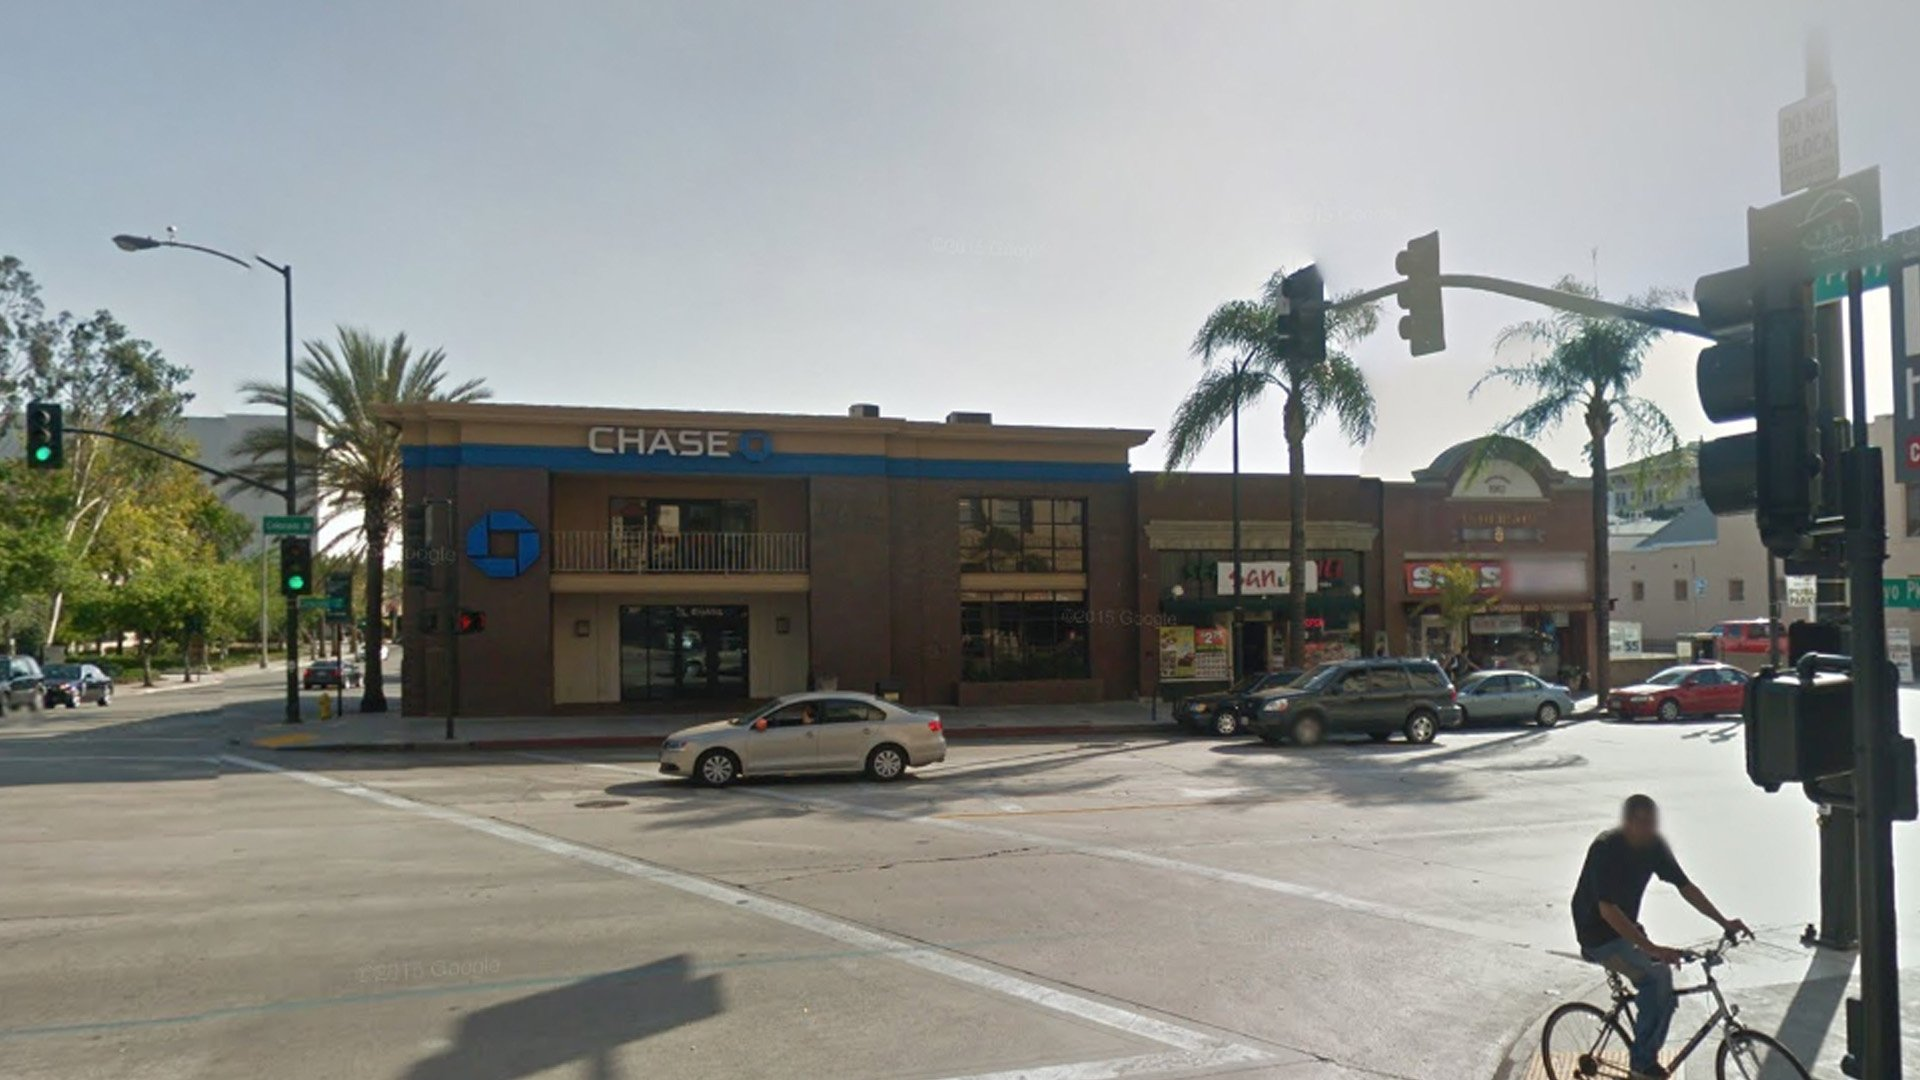 The Chase Bank located at 132 E. Colorado Bl. in Pasadena is seen in an image from Google Maps.